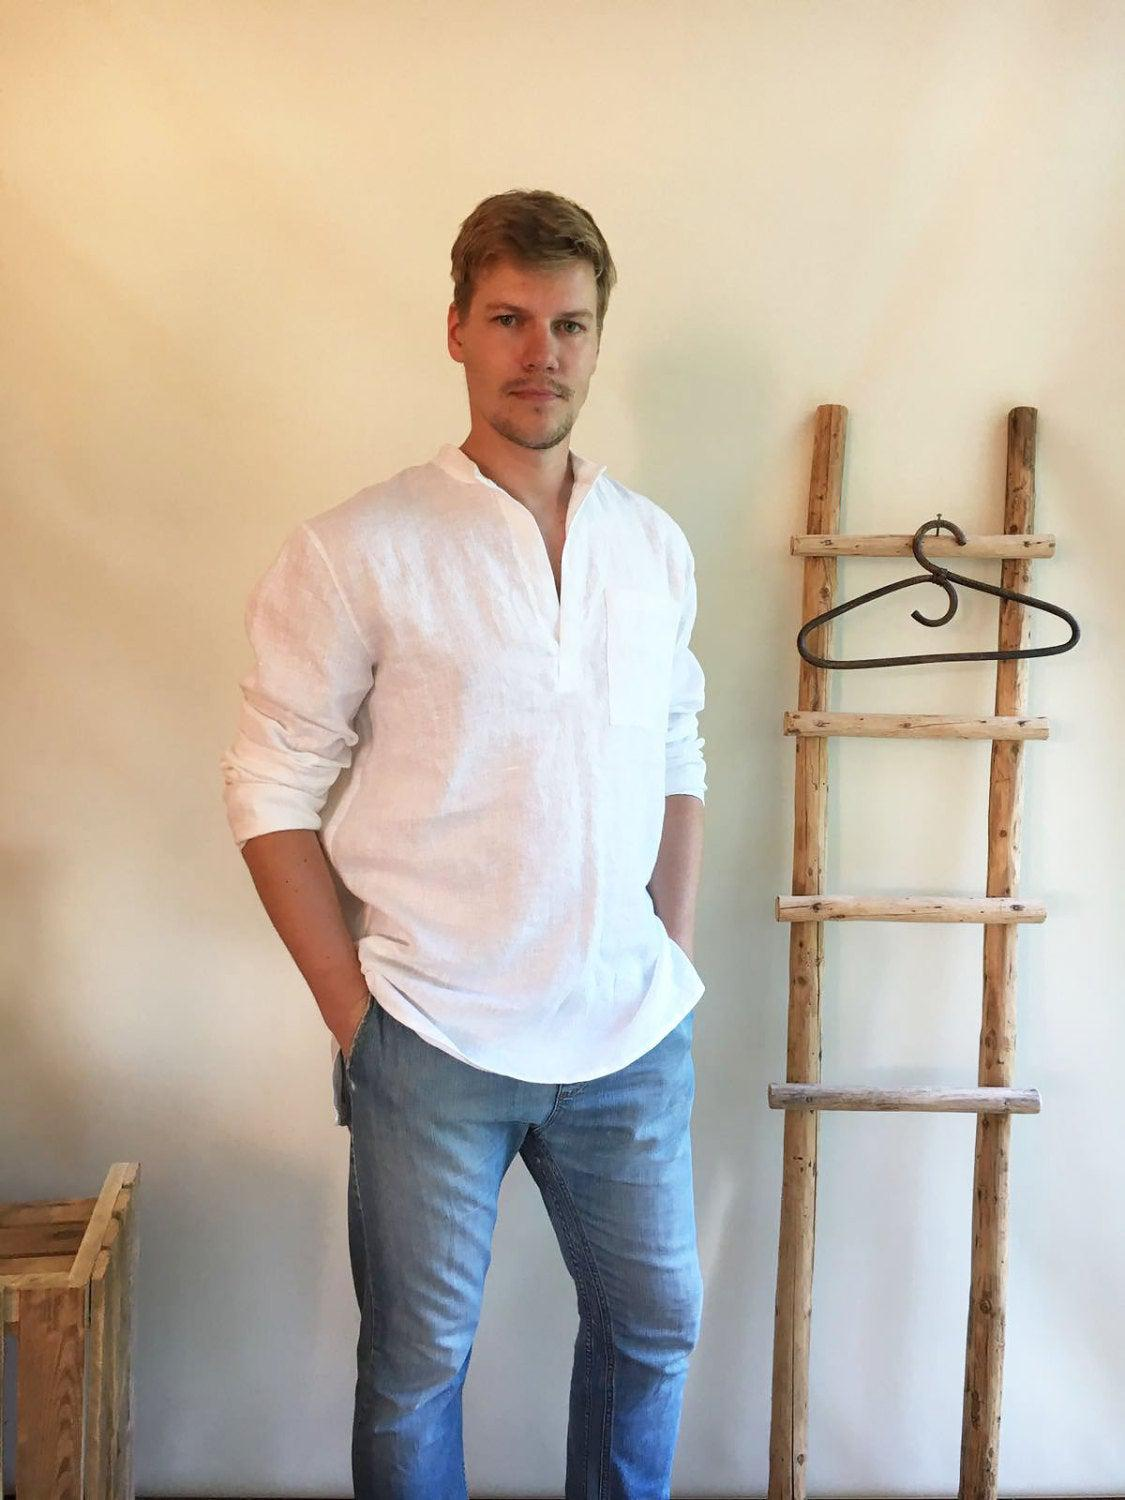 Linen Shirt Men, Mens Shirt, White Linen Shirt Dress, Long Sleeve Loose shirt, Mens clothing, Boho Beach Wedding Plus size shirt men gift